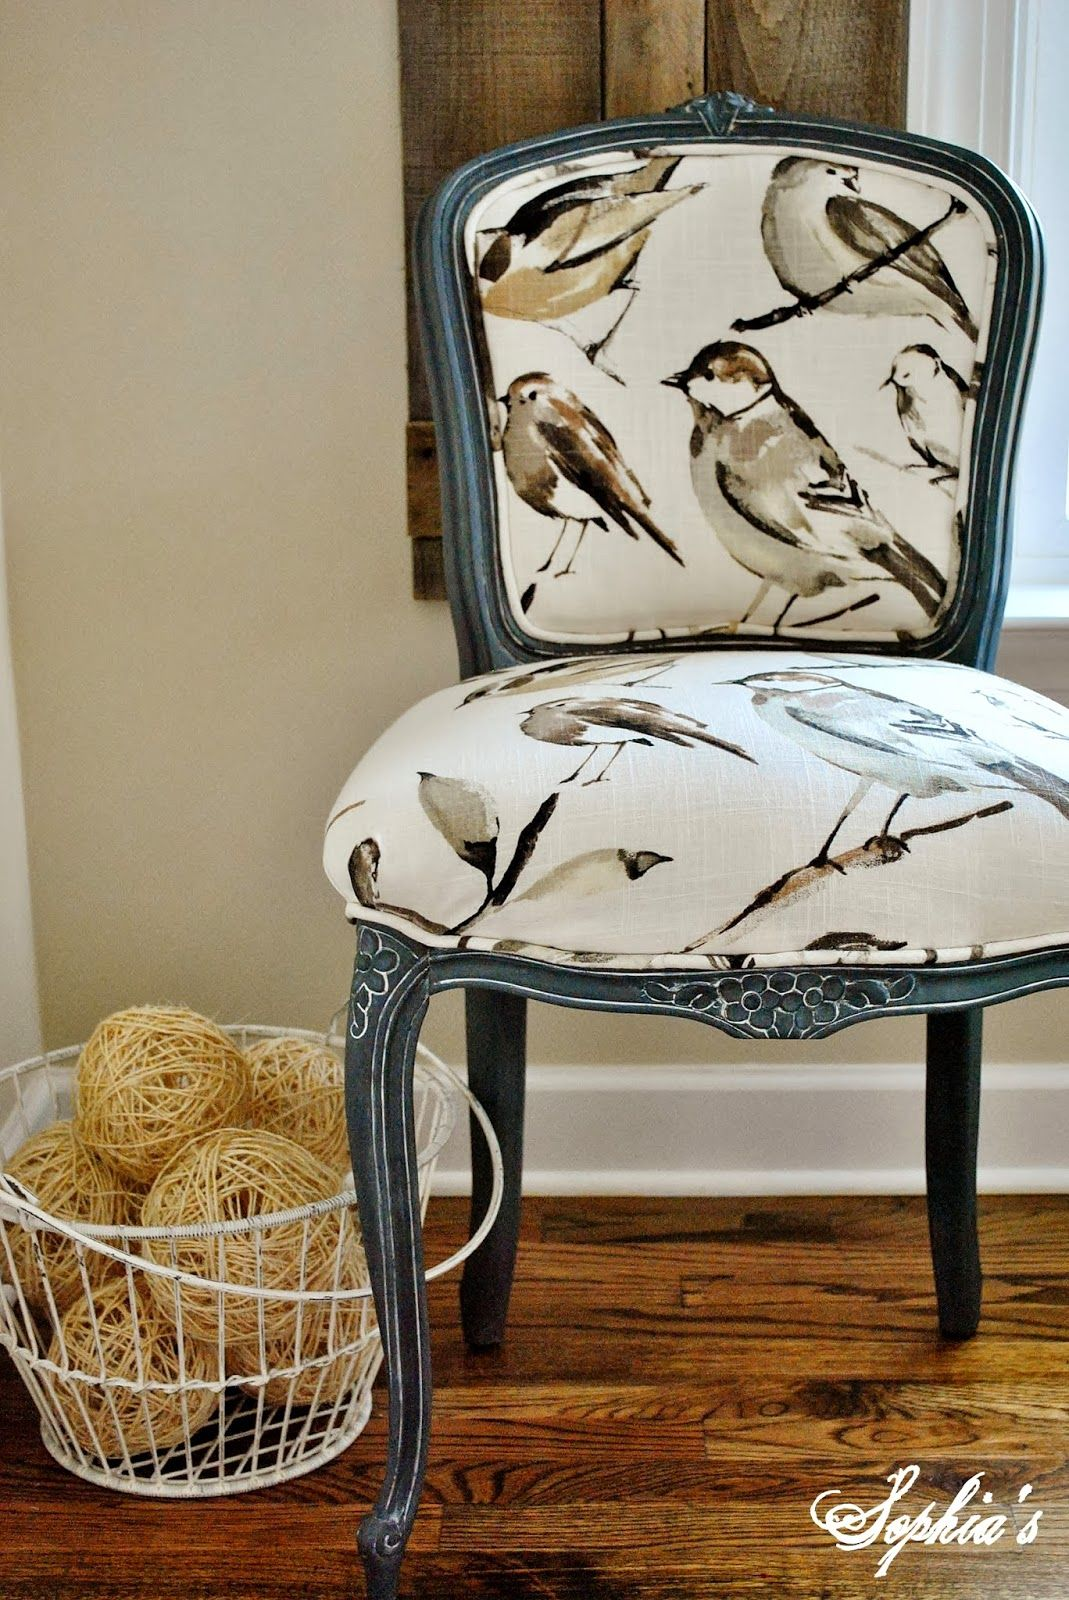 Where To Get Chairs Reupholstered Nook Tables And Sophia S French Chair Reupholstery Makeover Tutorial You Must See The Before